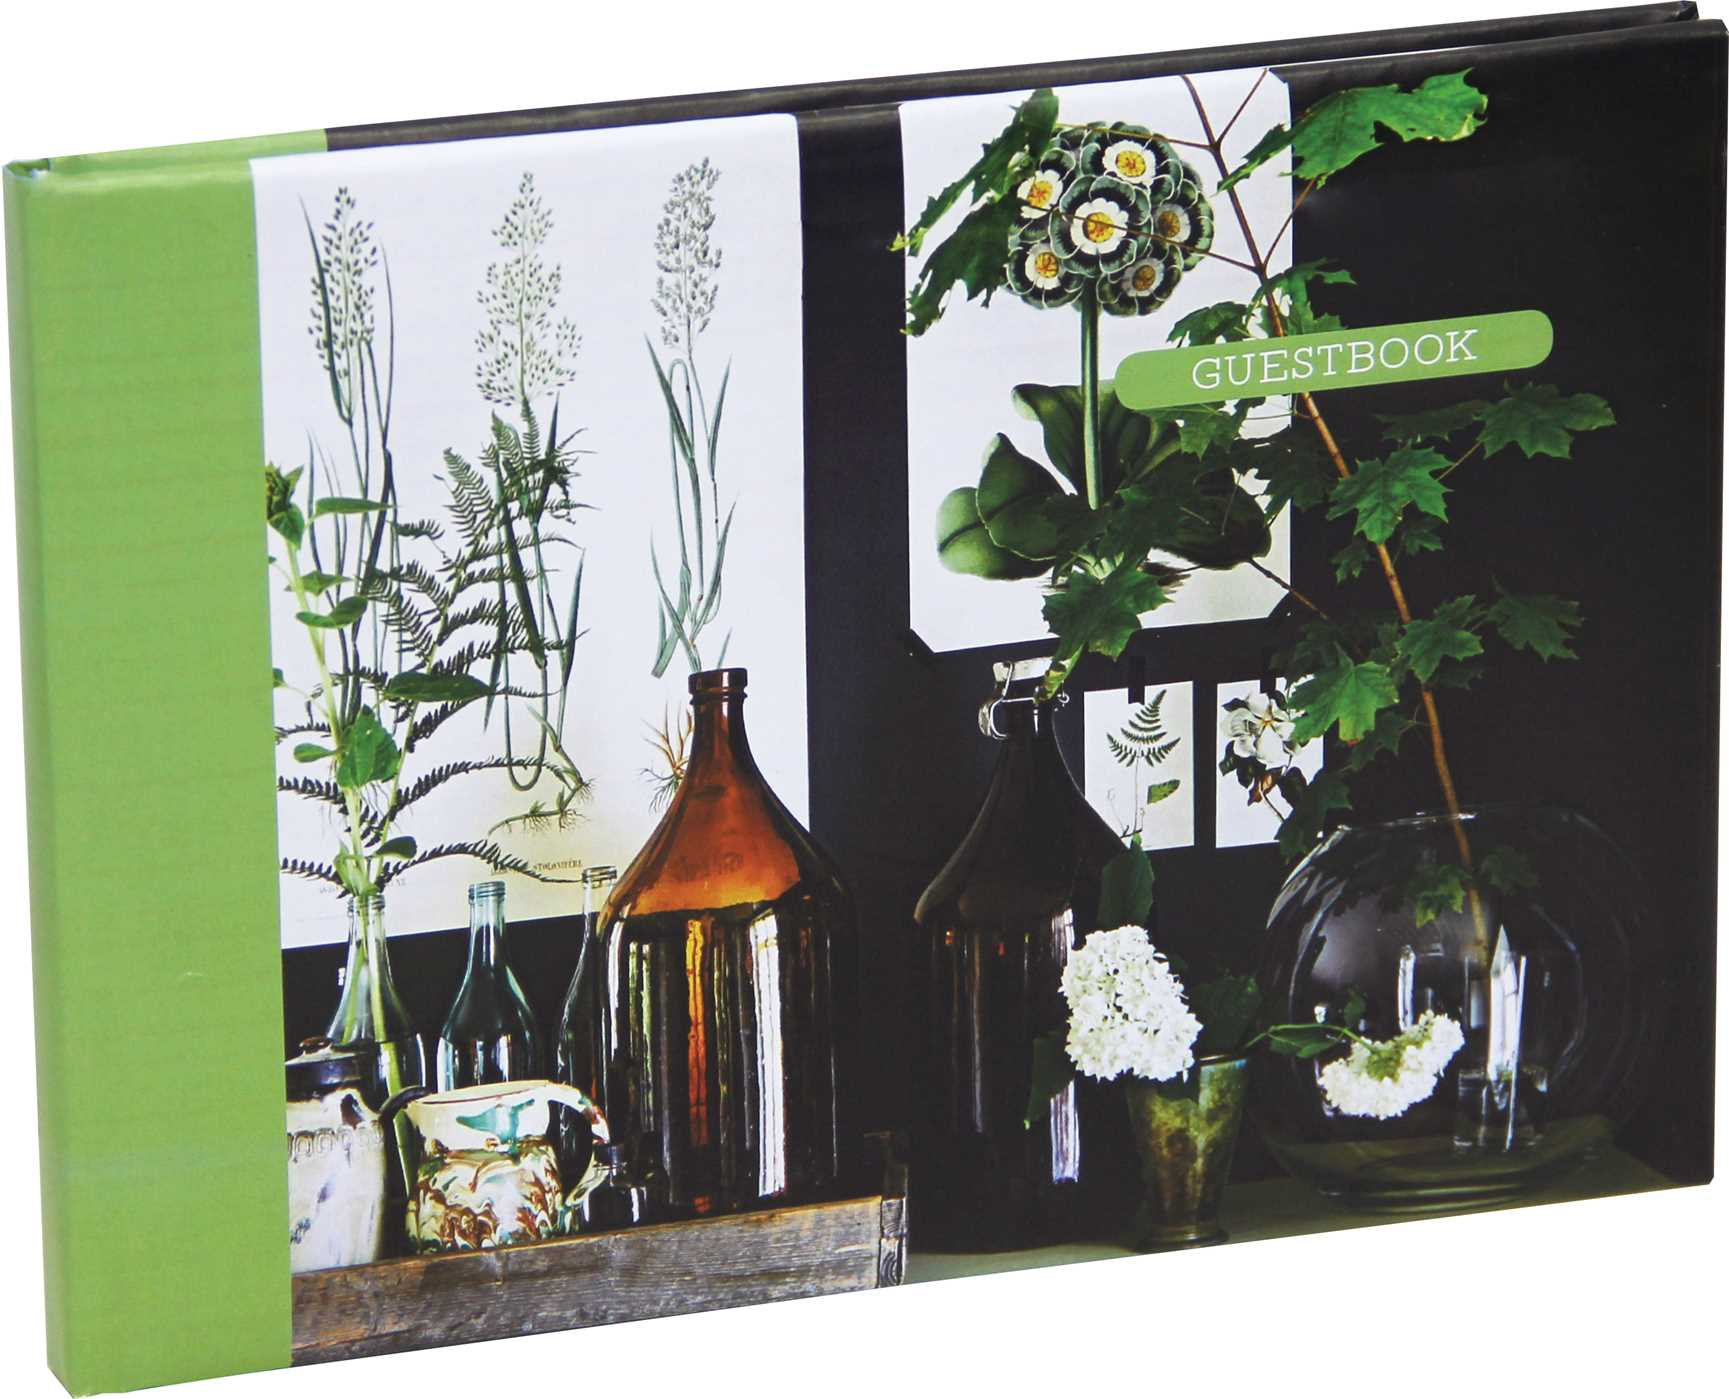 Botanical style guest book 9781849759489 hr